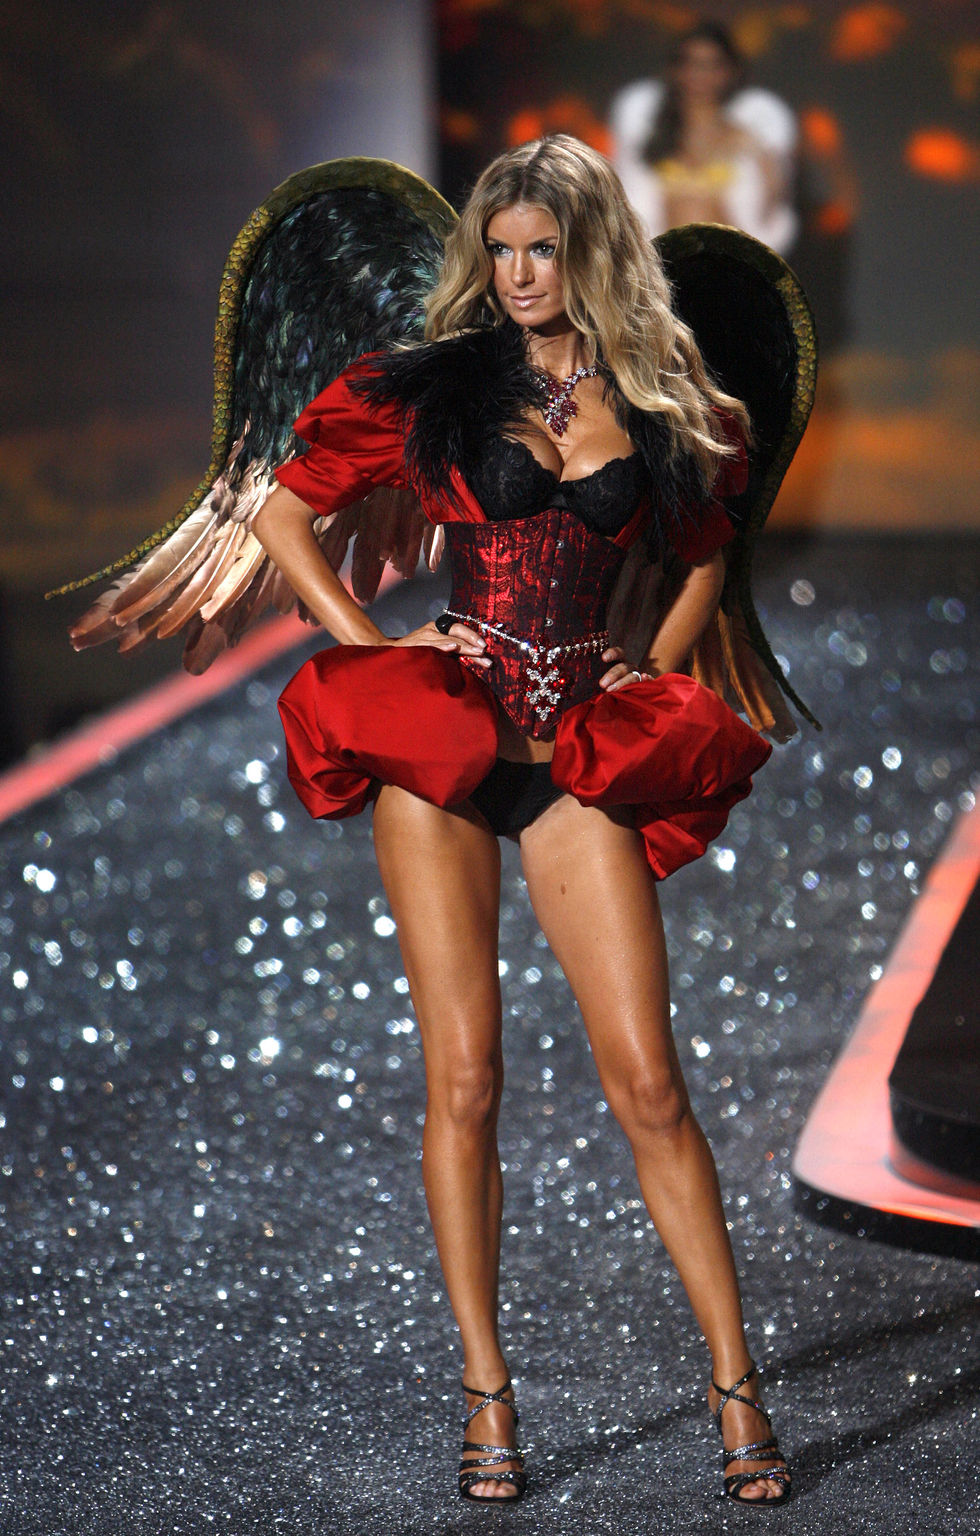 marisa-miller-2009-victorias-secret-fashion-show-01